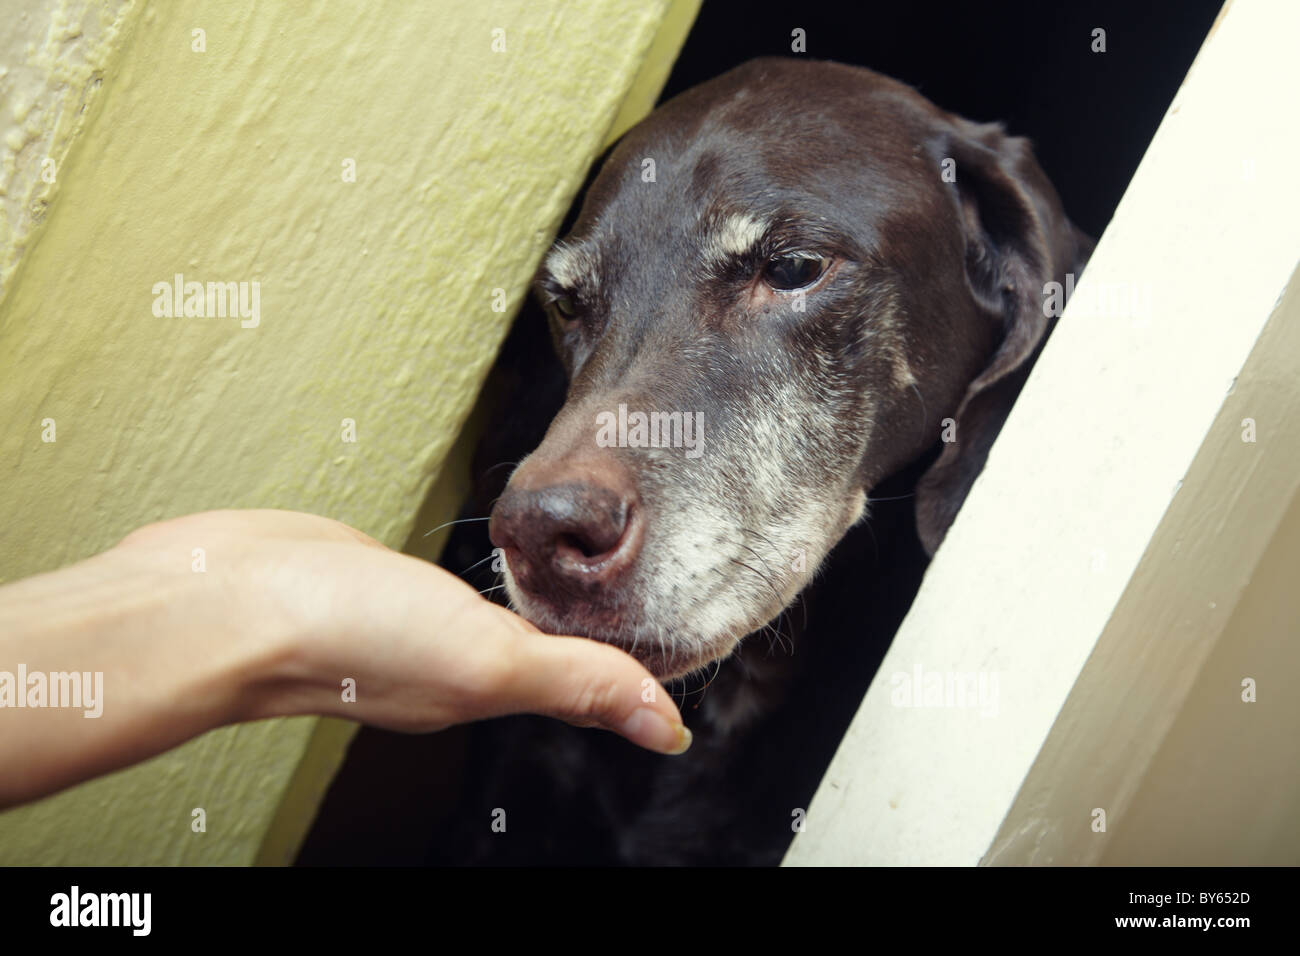 Dog eating from the human hand indoors. Natural light and colors - Stock Image